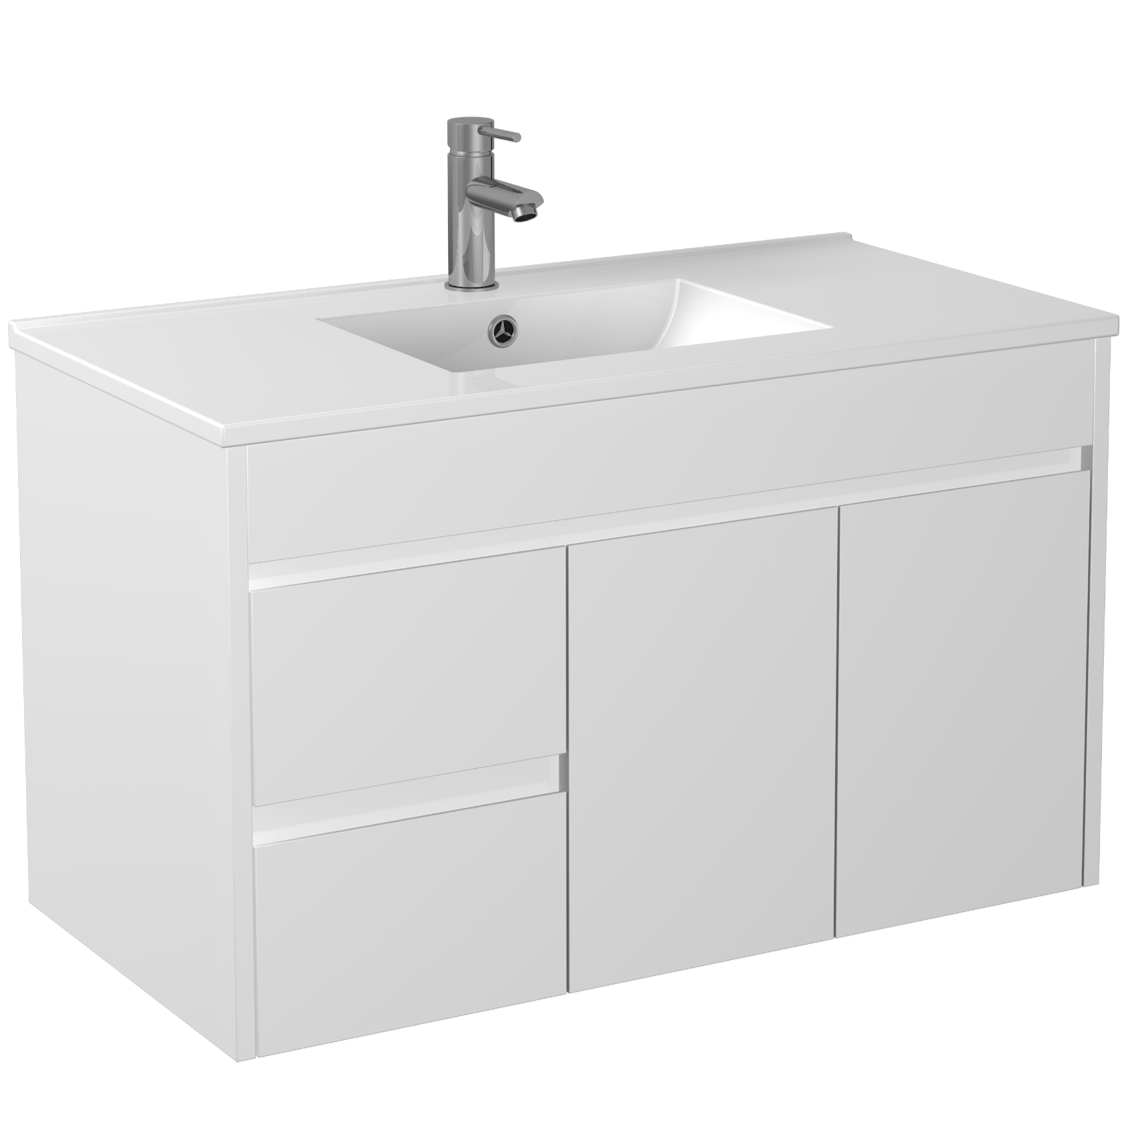 900mm PVC Waterproof Wall Hung Vanity (LH Drawers)